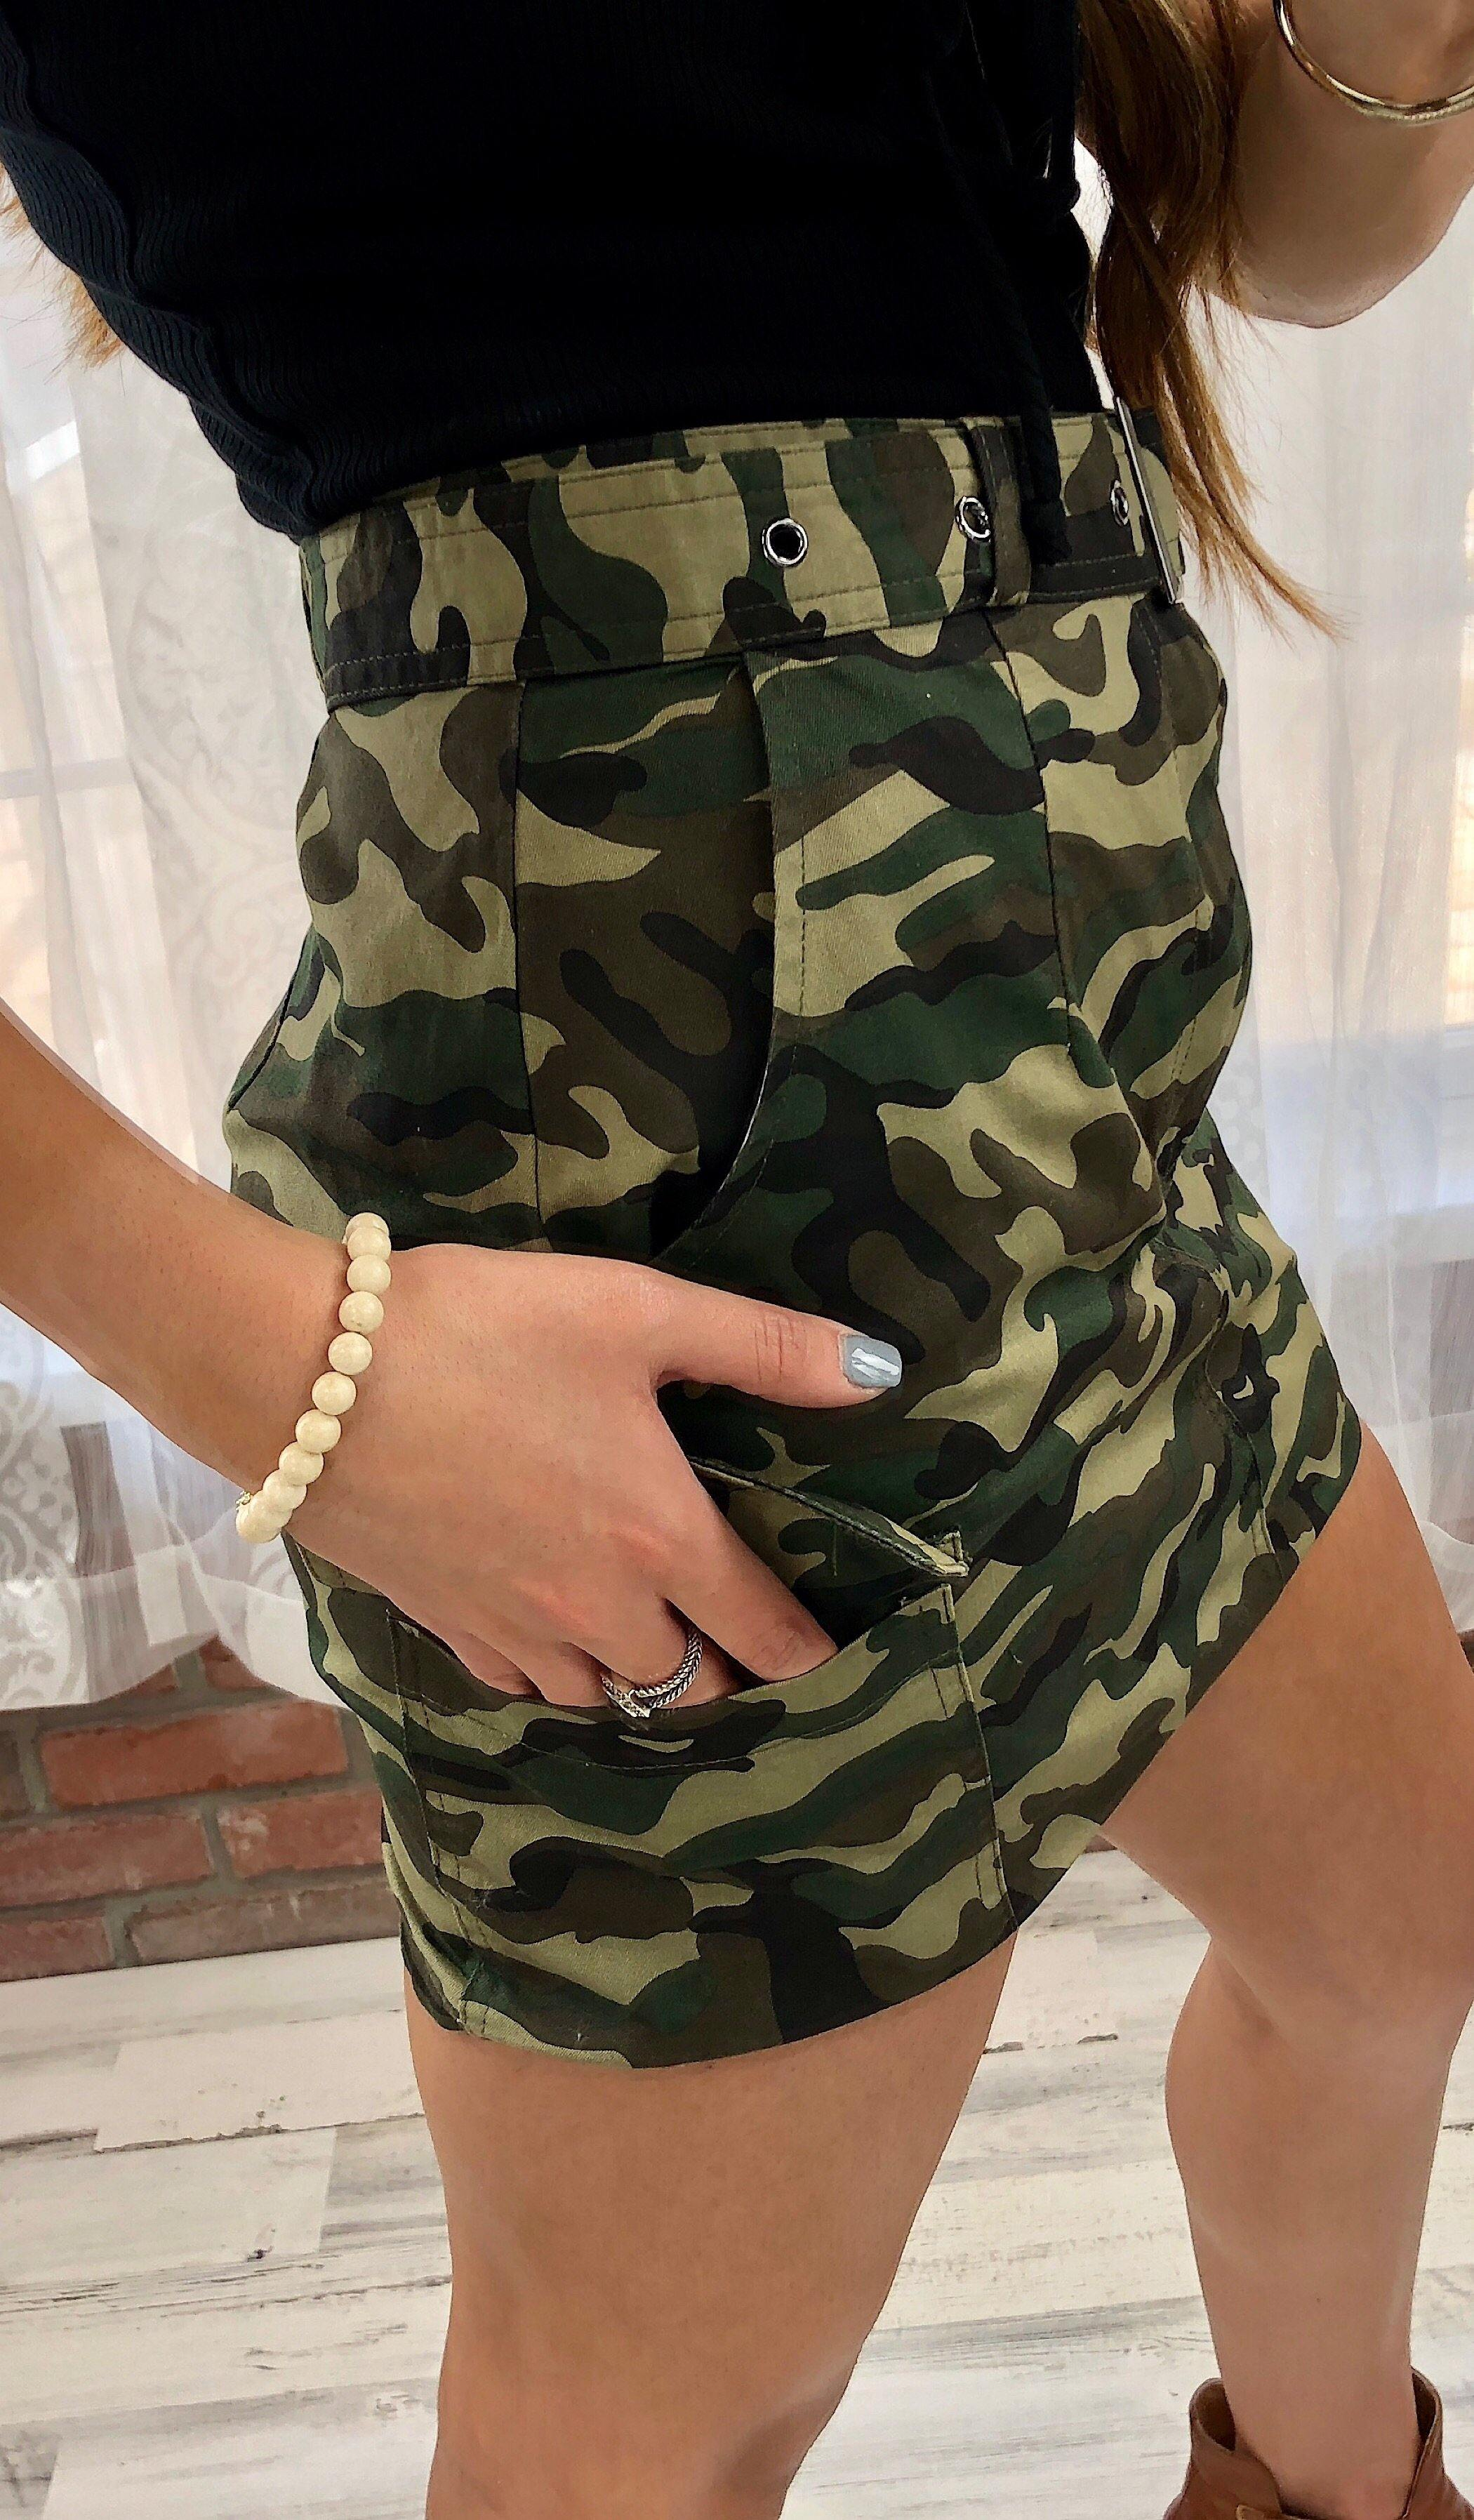 BELTED CAMO SKIRT - elbie boutique, LLC